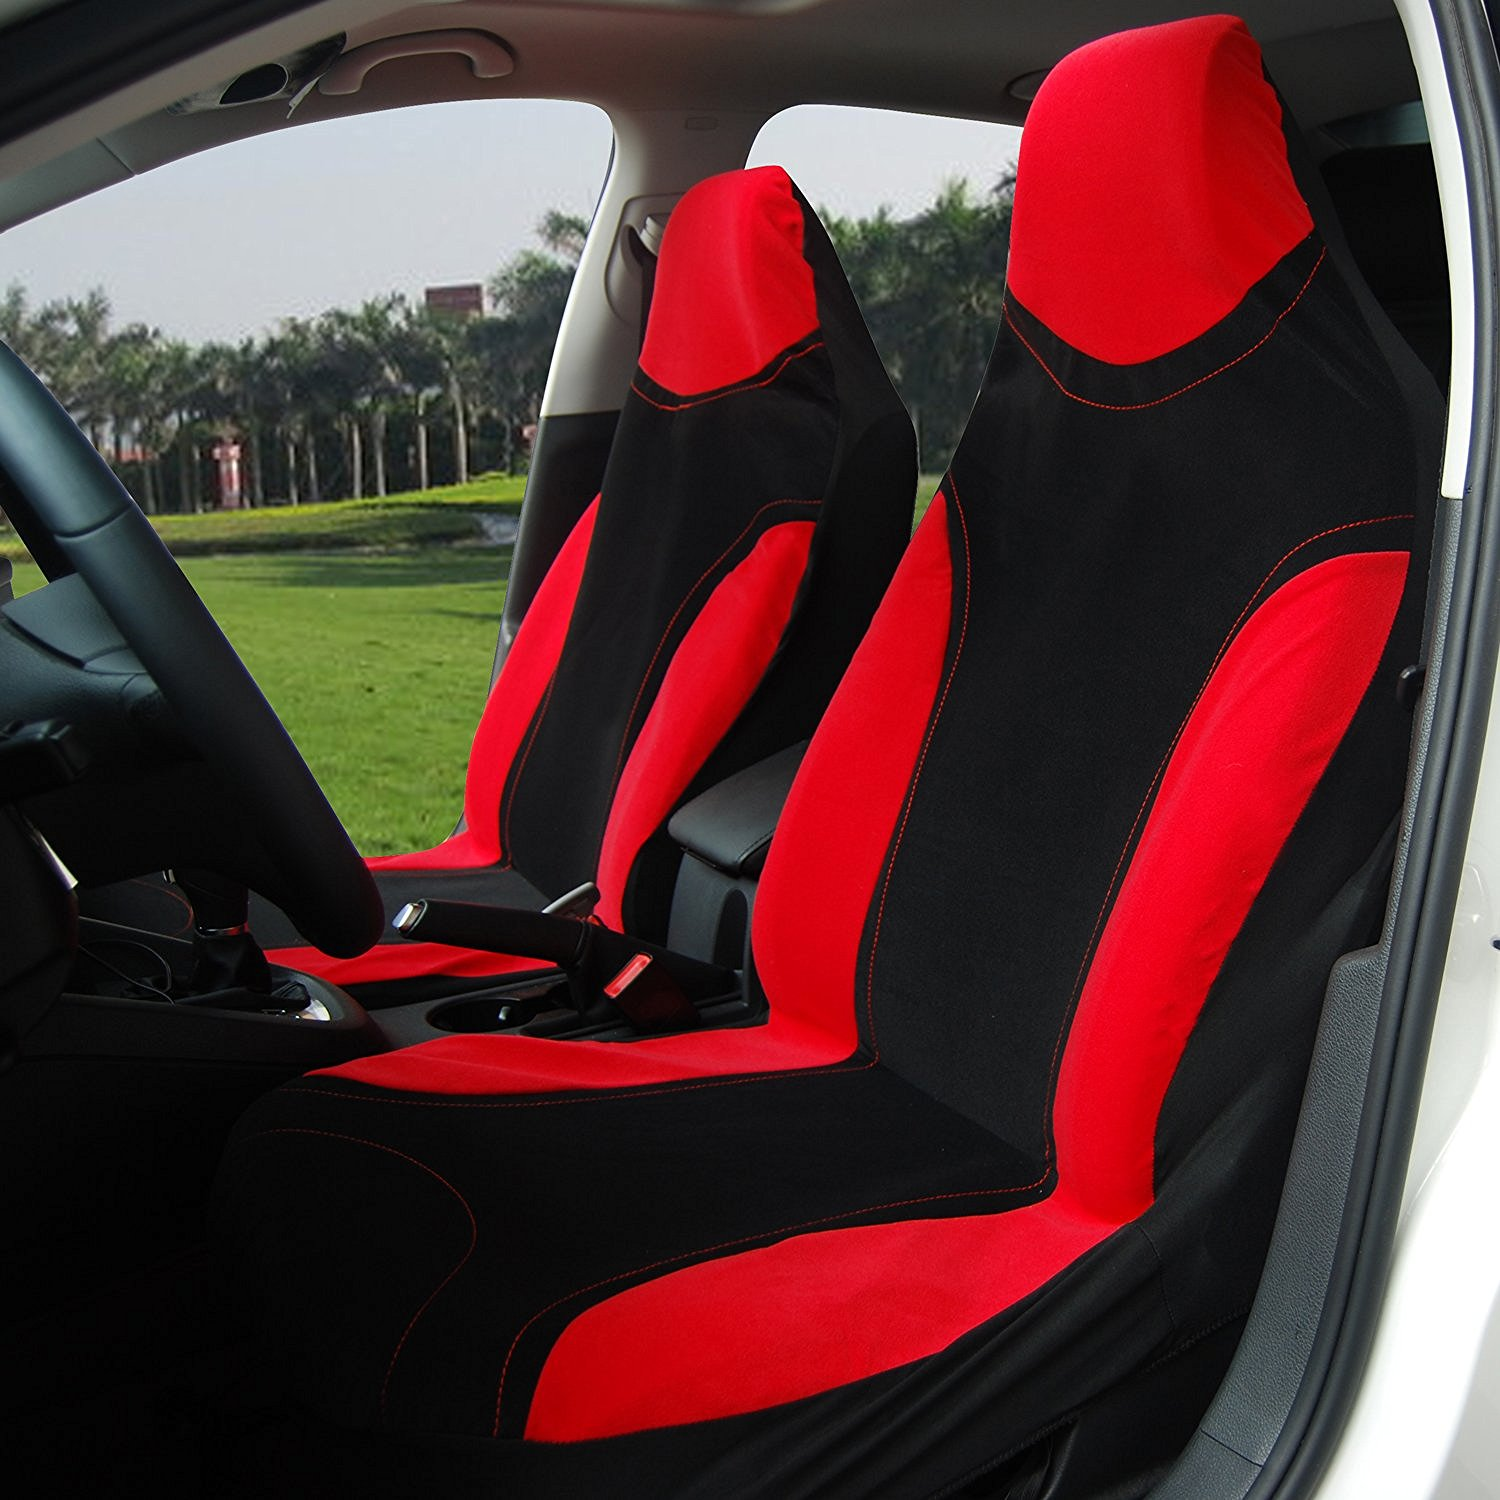 Adeco 2-Piece Car Vehicle Protective Seat Covers